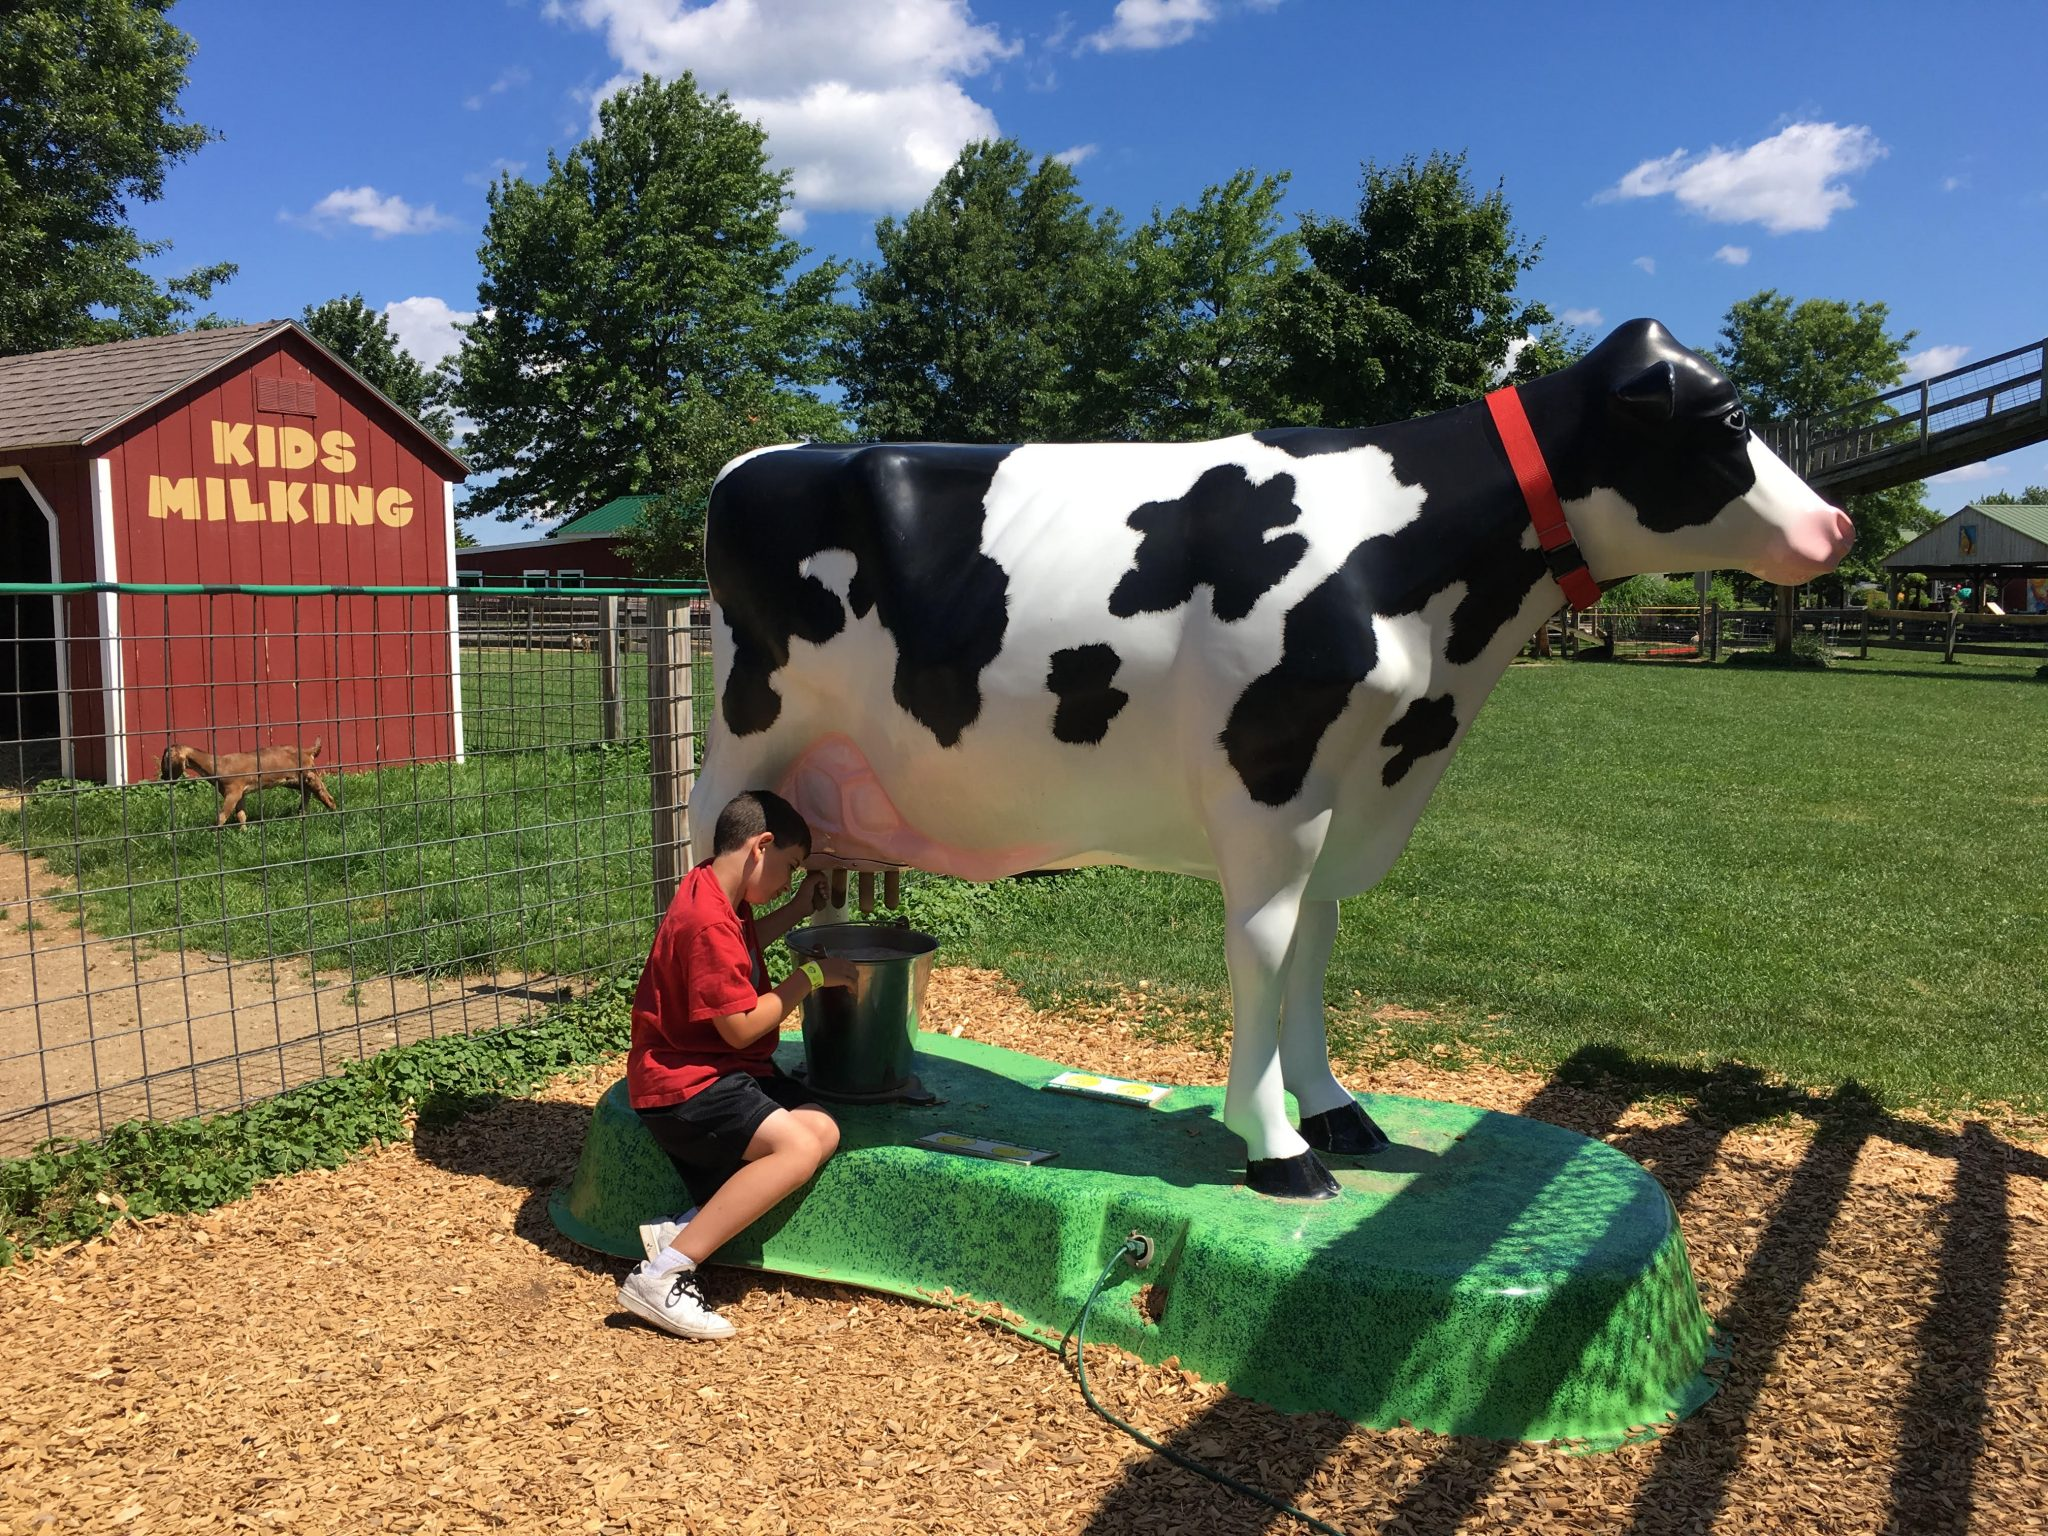 Summer fun at Davis Farmland in Sterling, MA